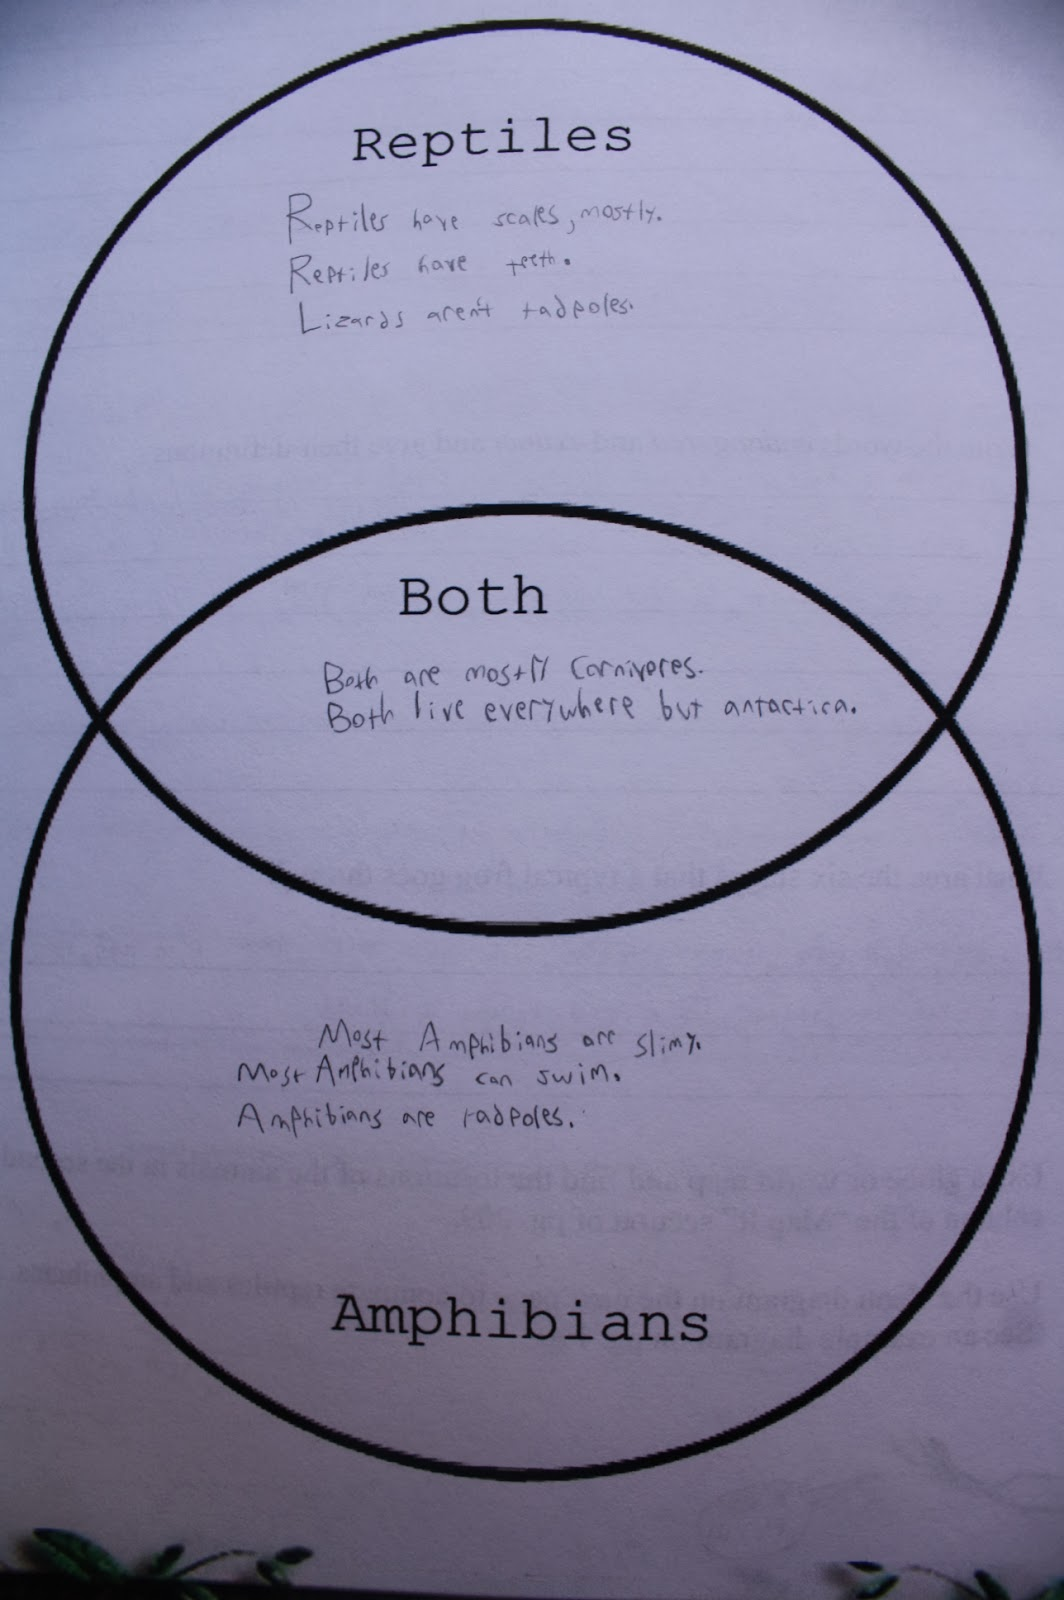 Amphibians Vs Reptiles Venn Diagram Wiring Diagrams Software And